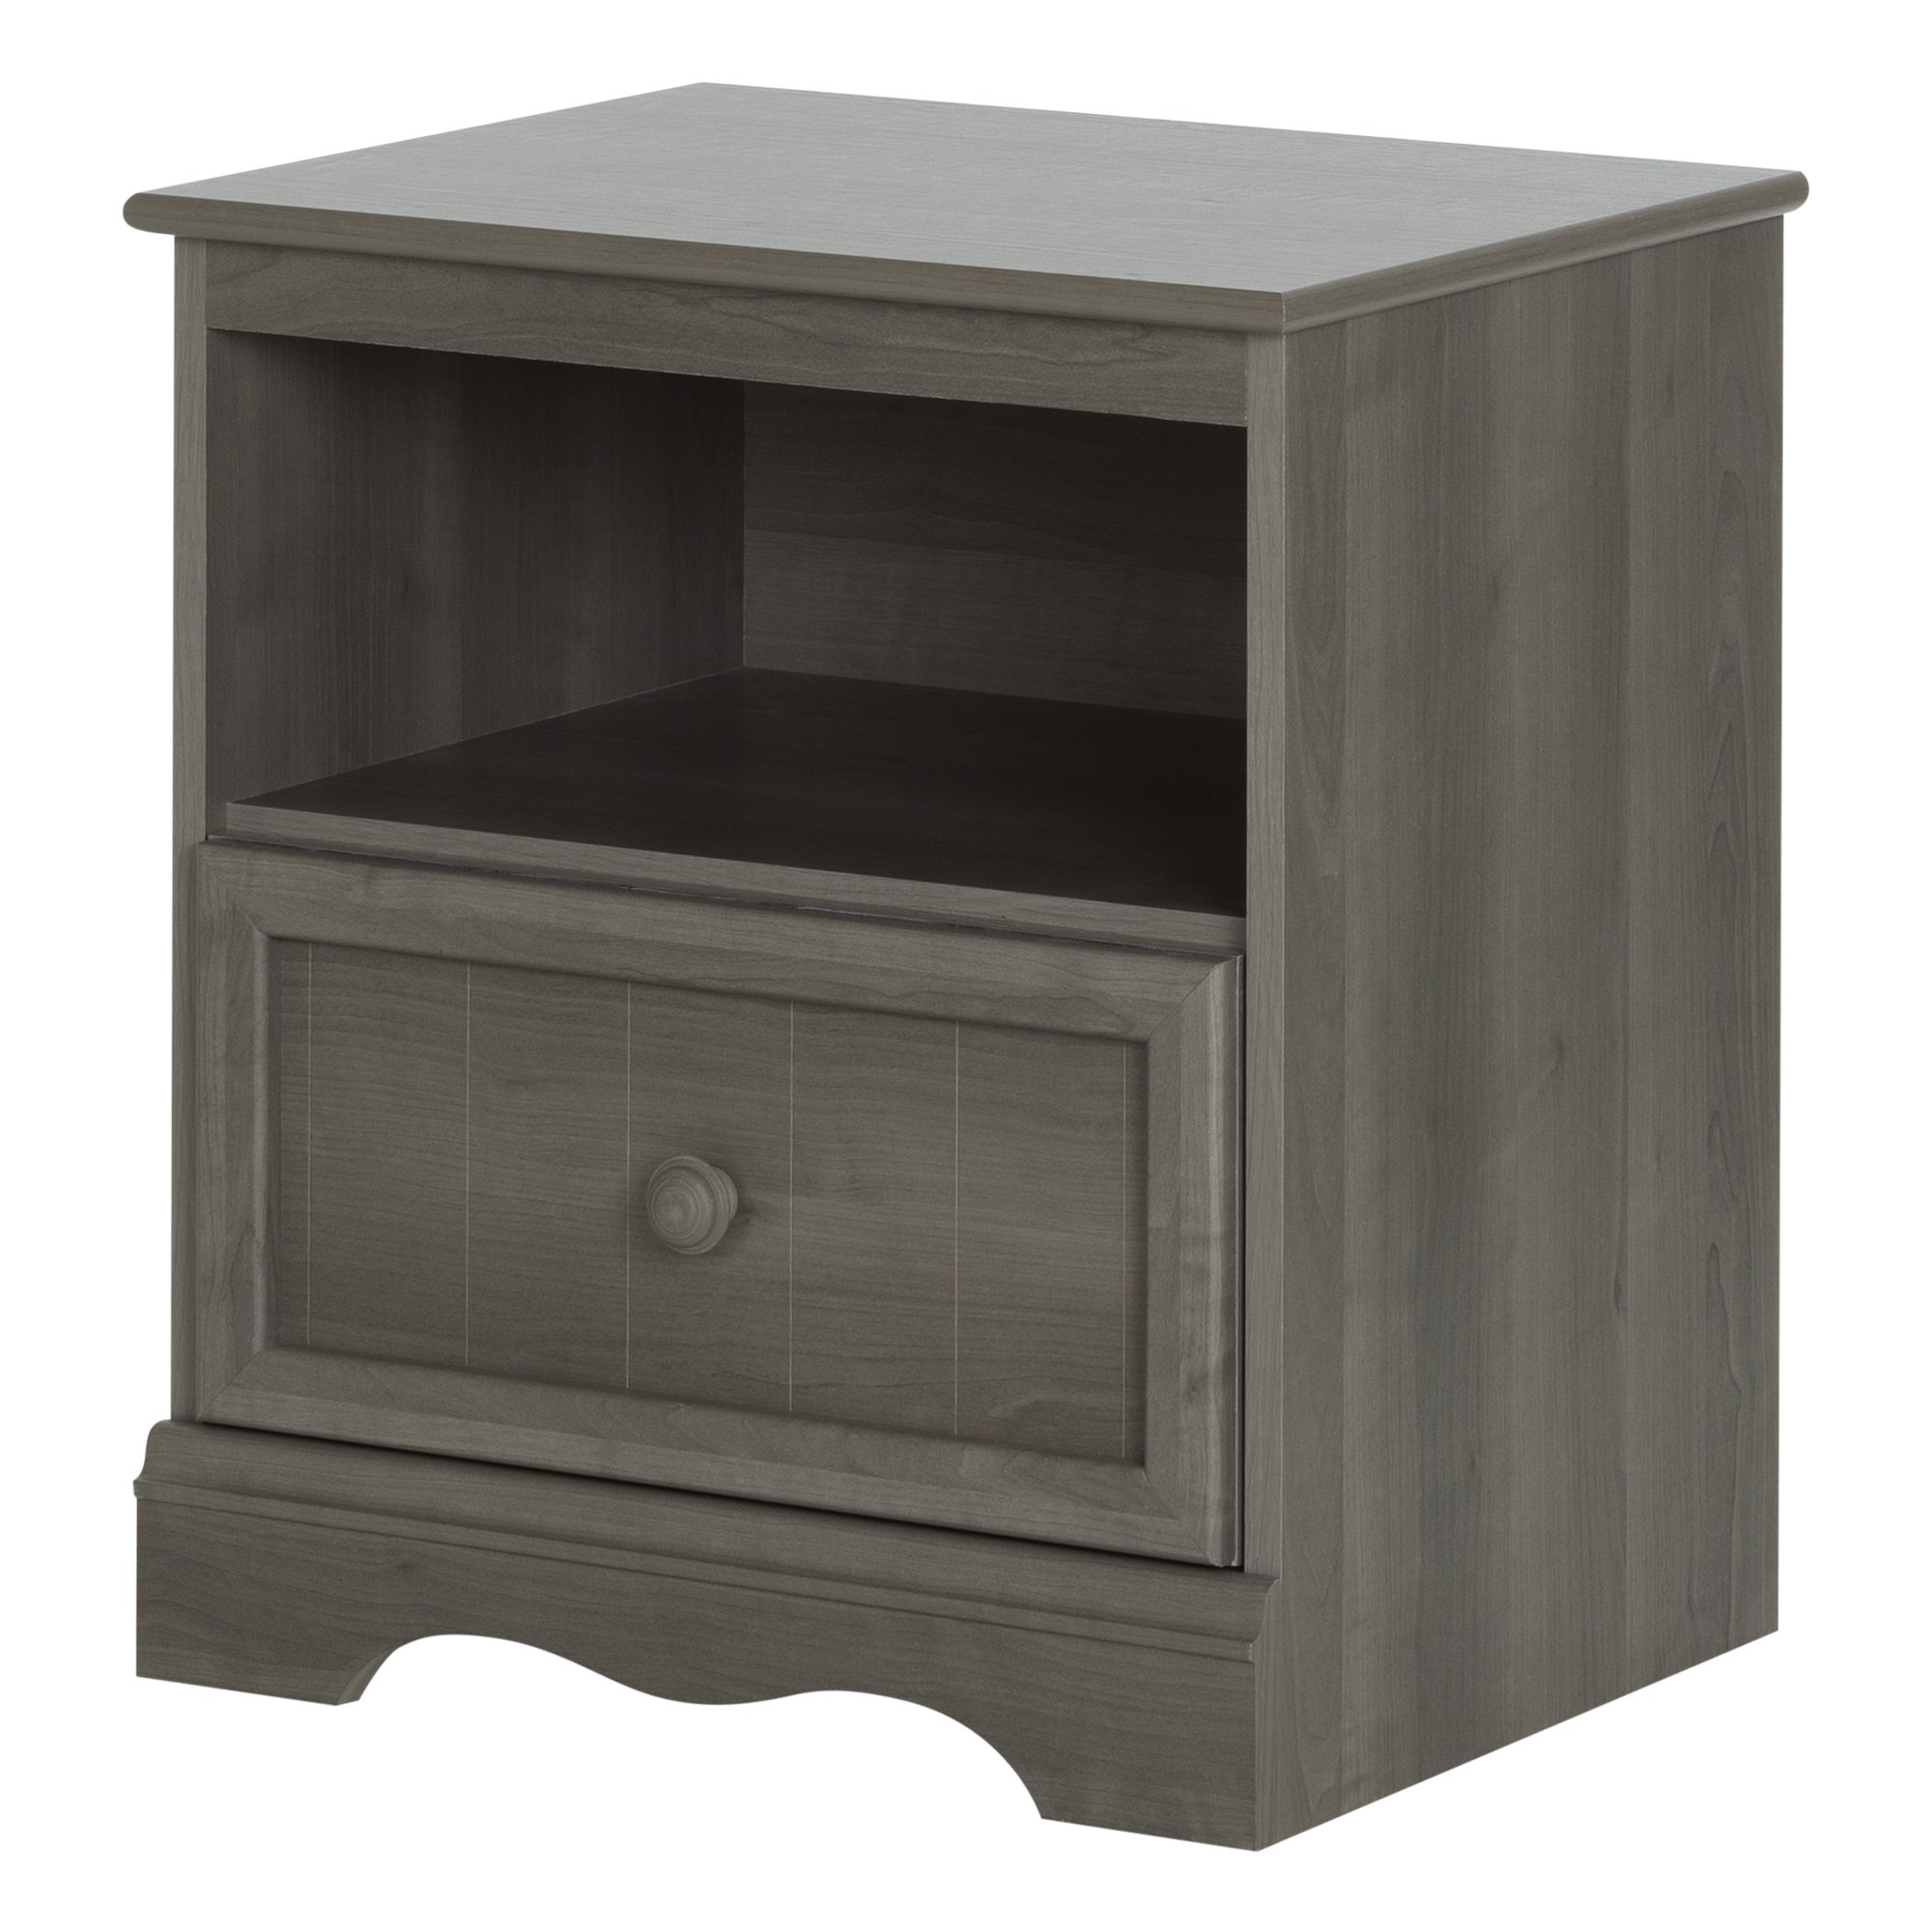 South Shore Savannah 1-Drawer Nightstand, Gray Maple by South Shore